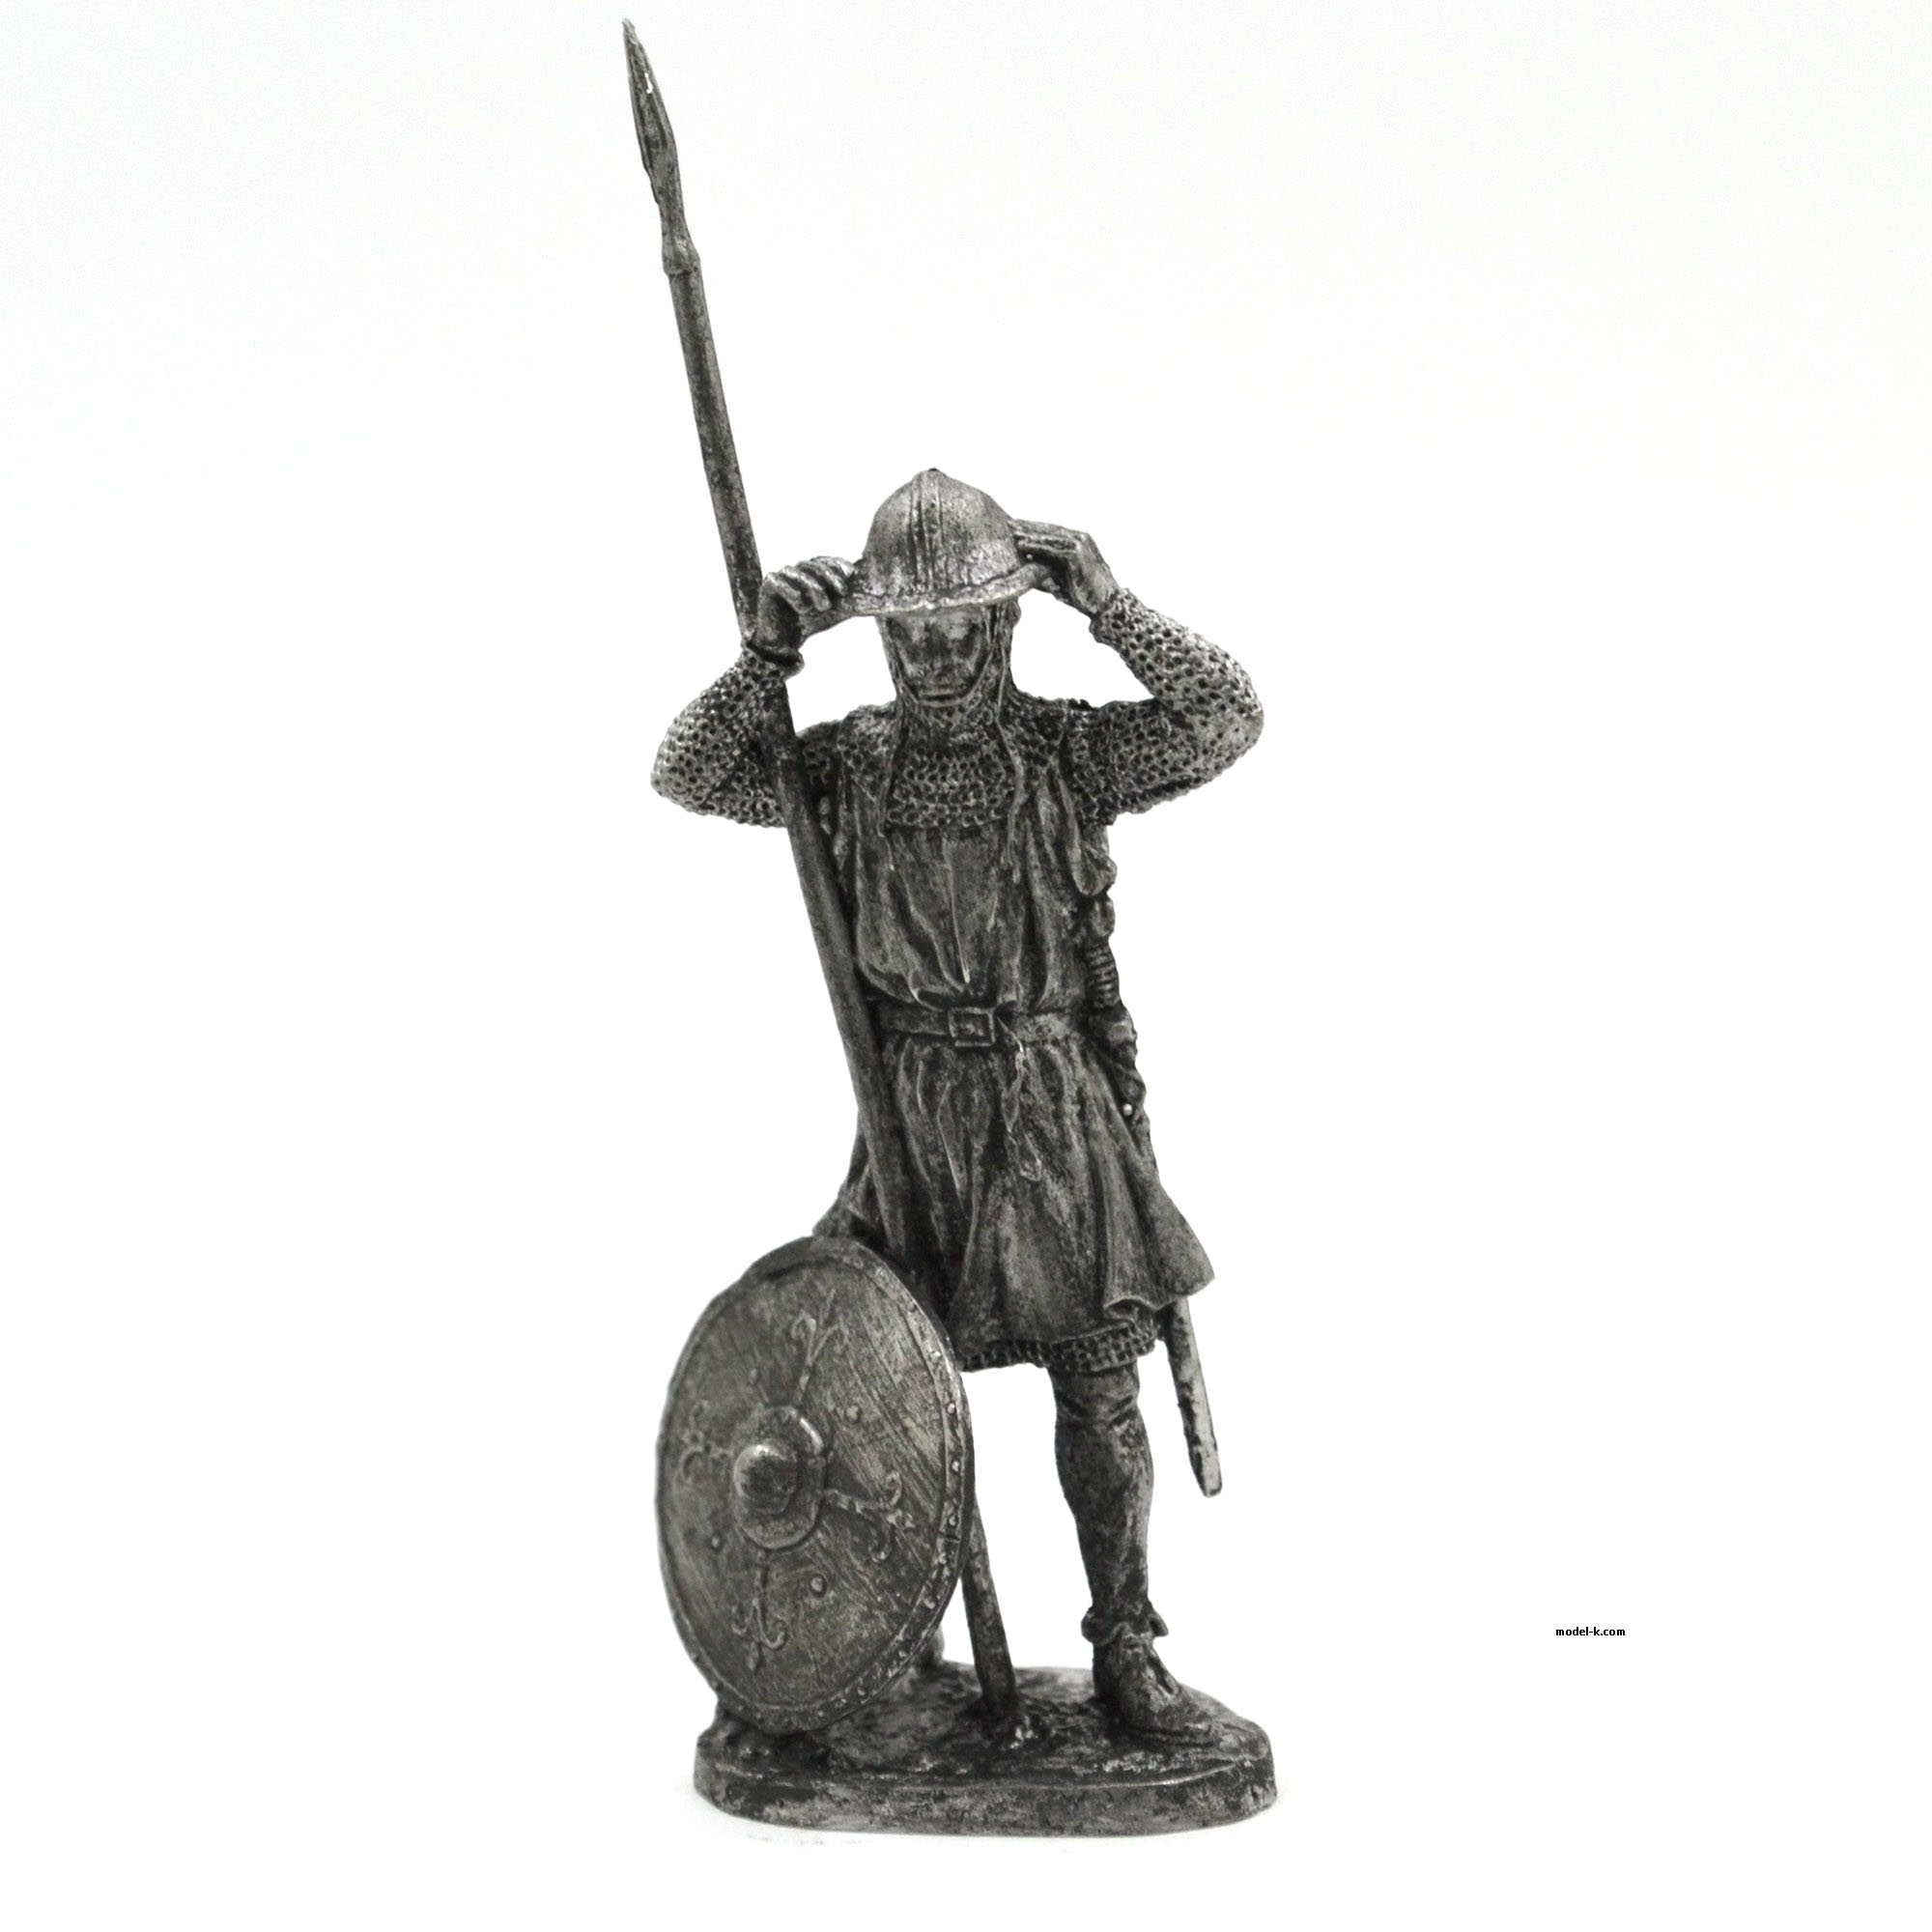 Infantryman. Europe 54mm tin figure